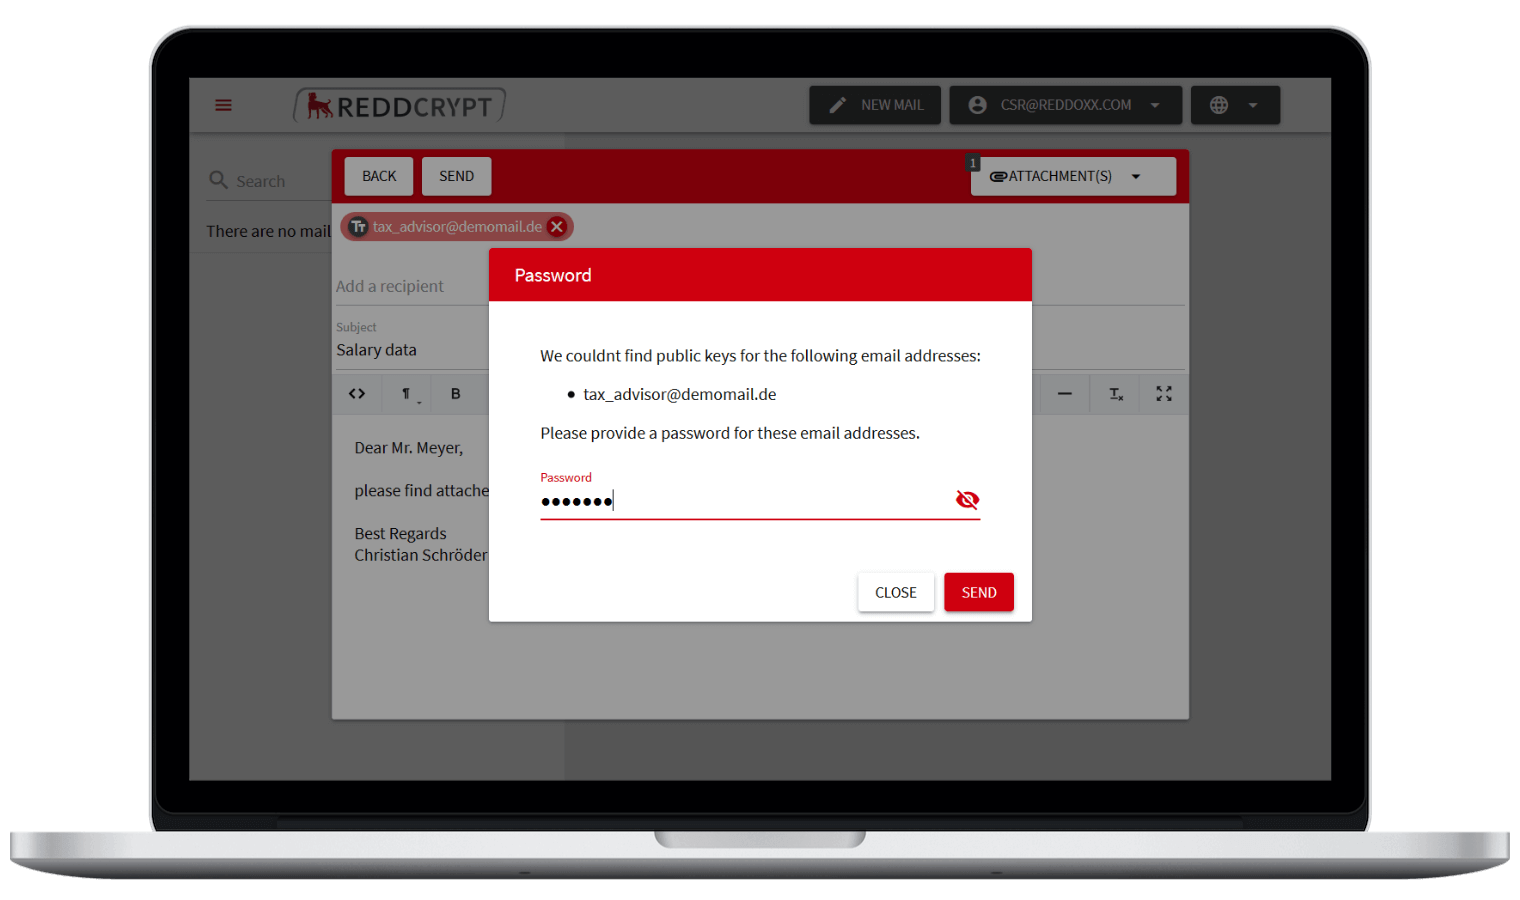 If the recipient is not a REDDCRYPT user yet, only a one time passphrase is needed to encrypt